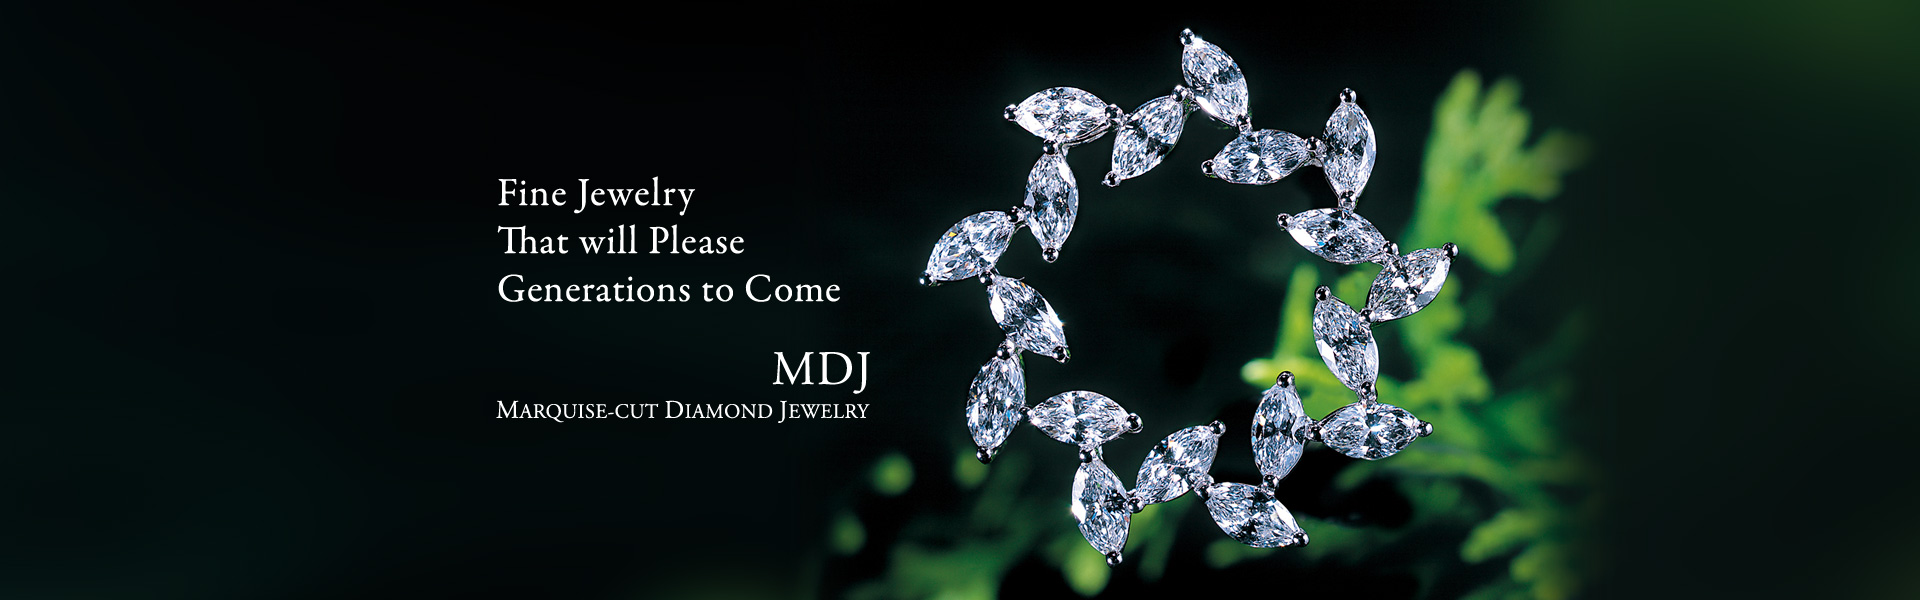 MDJ Marquise-cut Diamond Jewelry